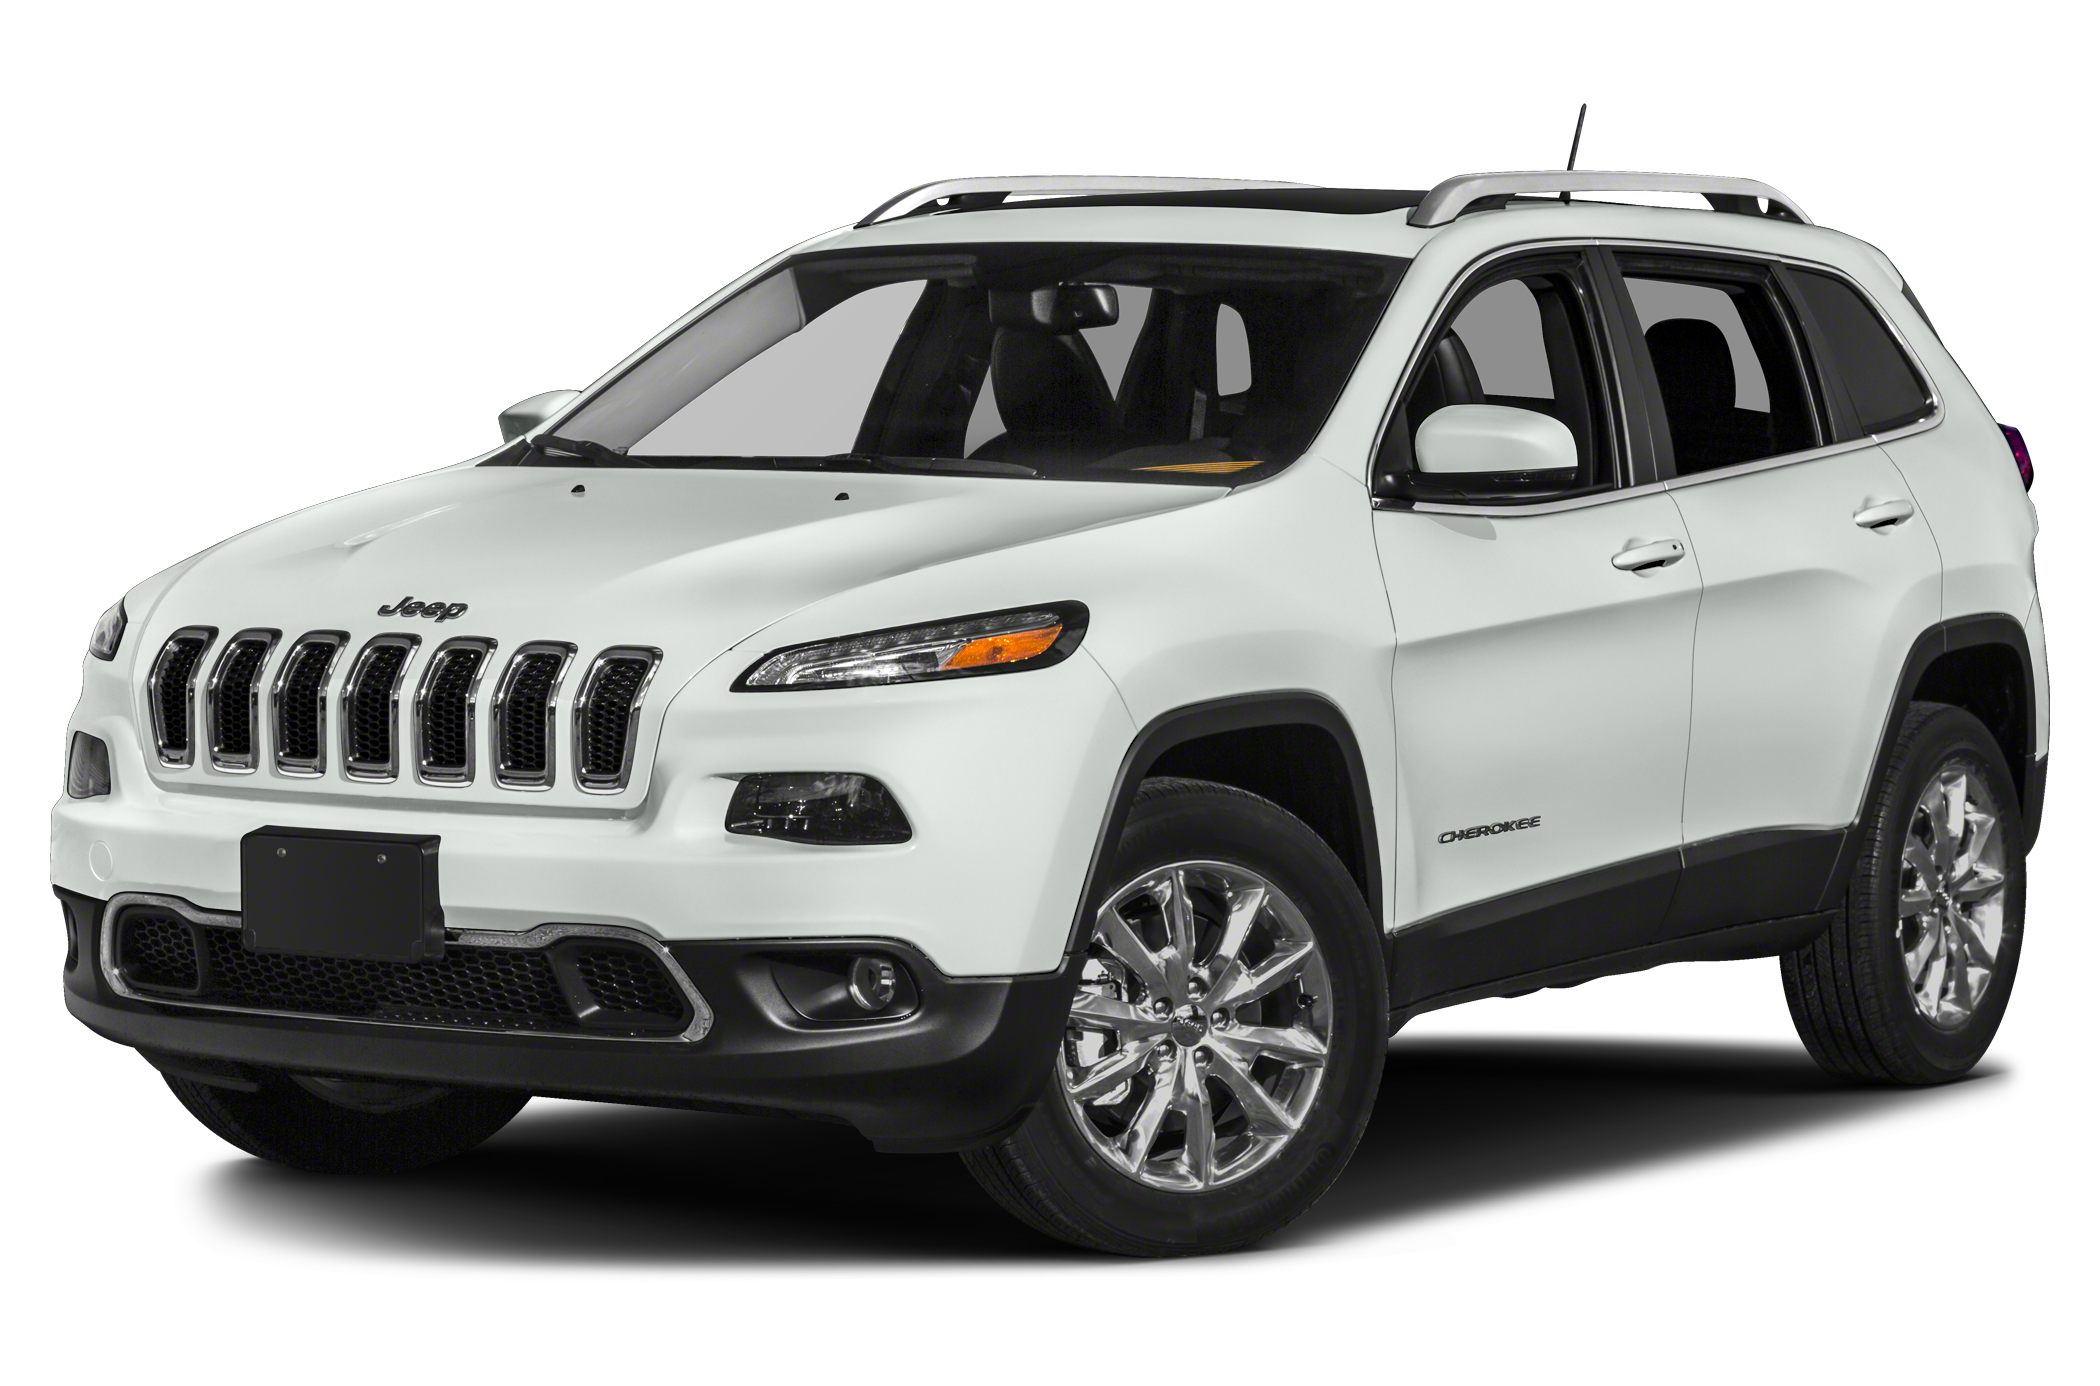 2014 Jeep Cherokee Limited SUV for sale in Kansas City for $34,007 with 0 miles.